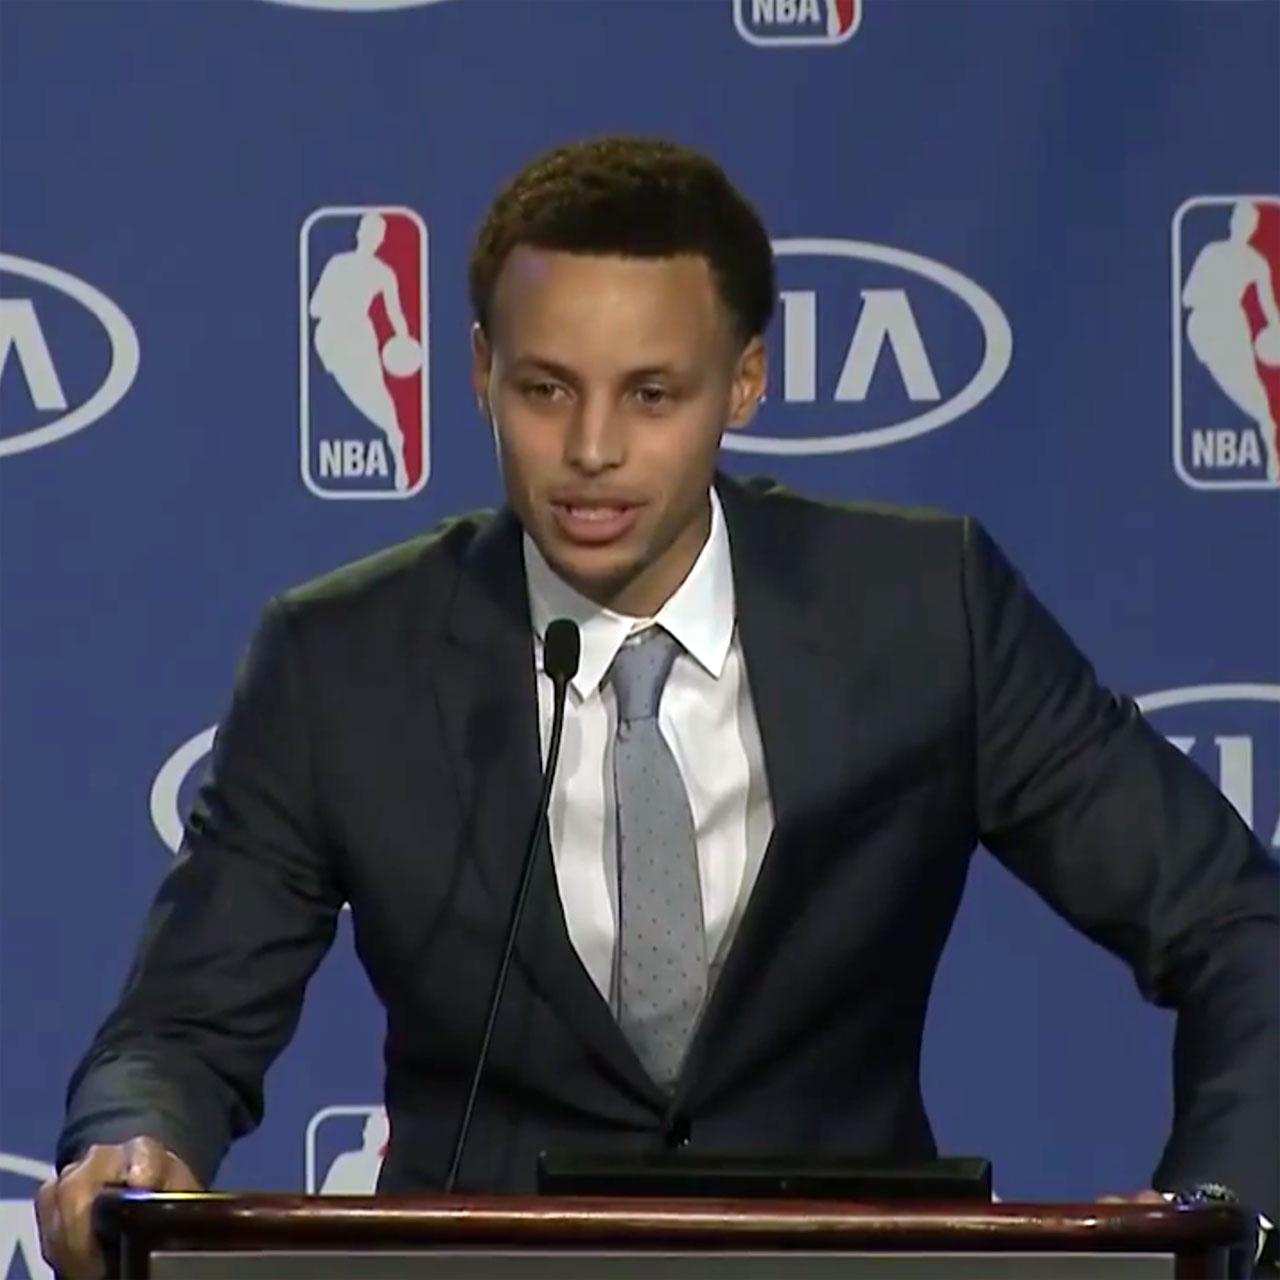 James Harden Mvp Speech: Stephen Curry Gives Props To Nana And Pops In MVP Speech